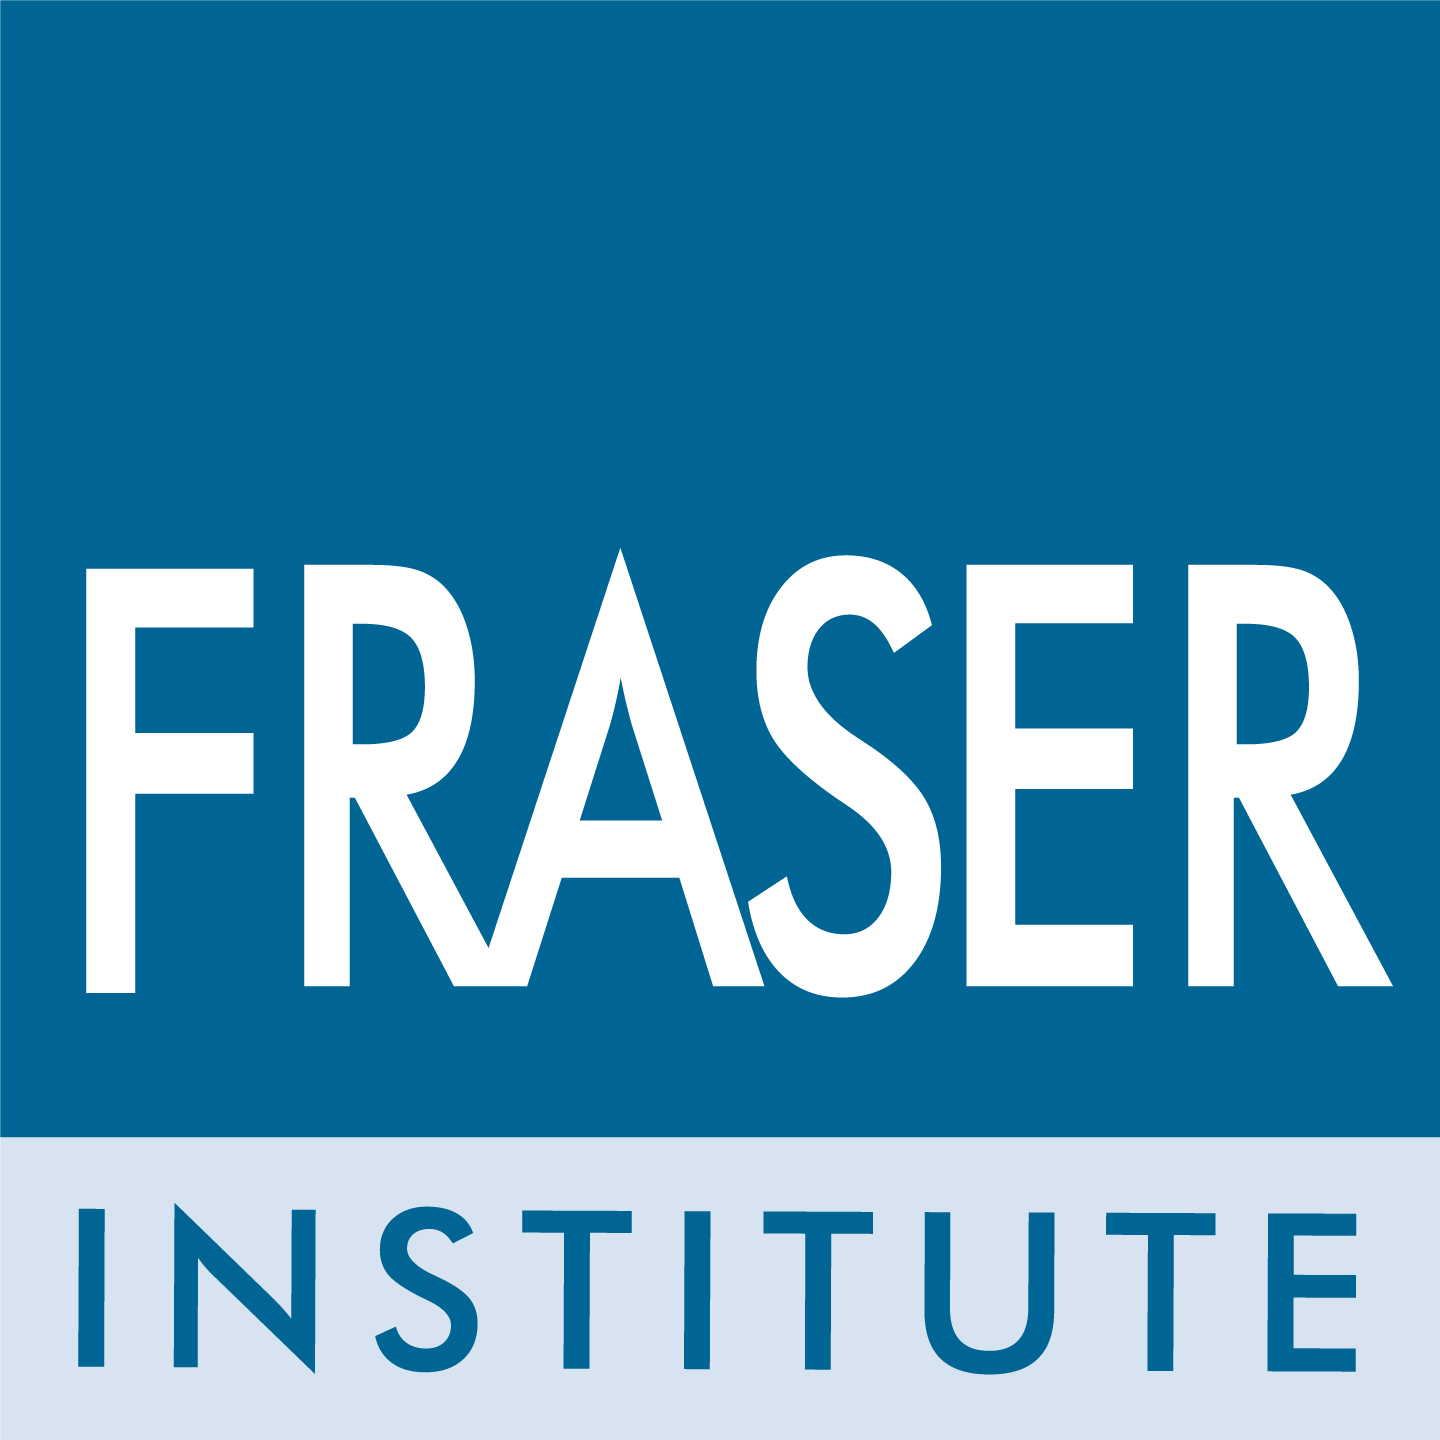 Fraser Institute Media Advisory: How have economic rights for women changed globally? New study coming Thursday, March 5